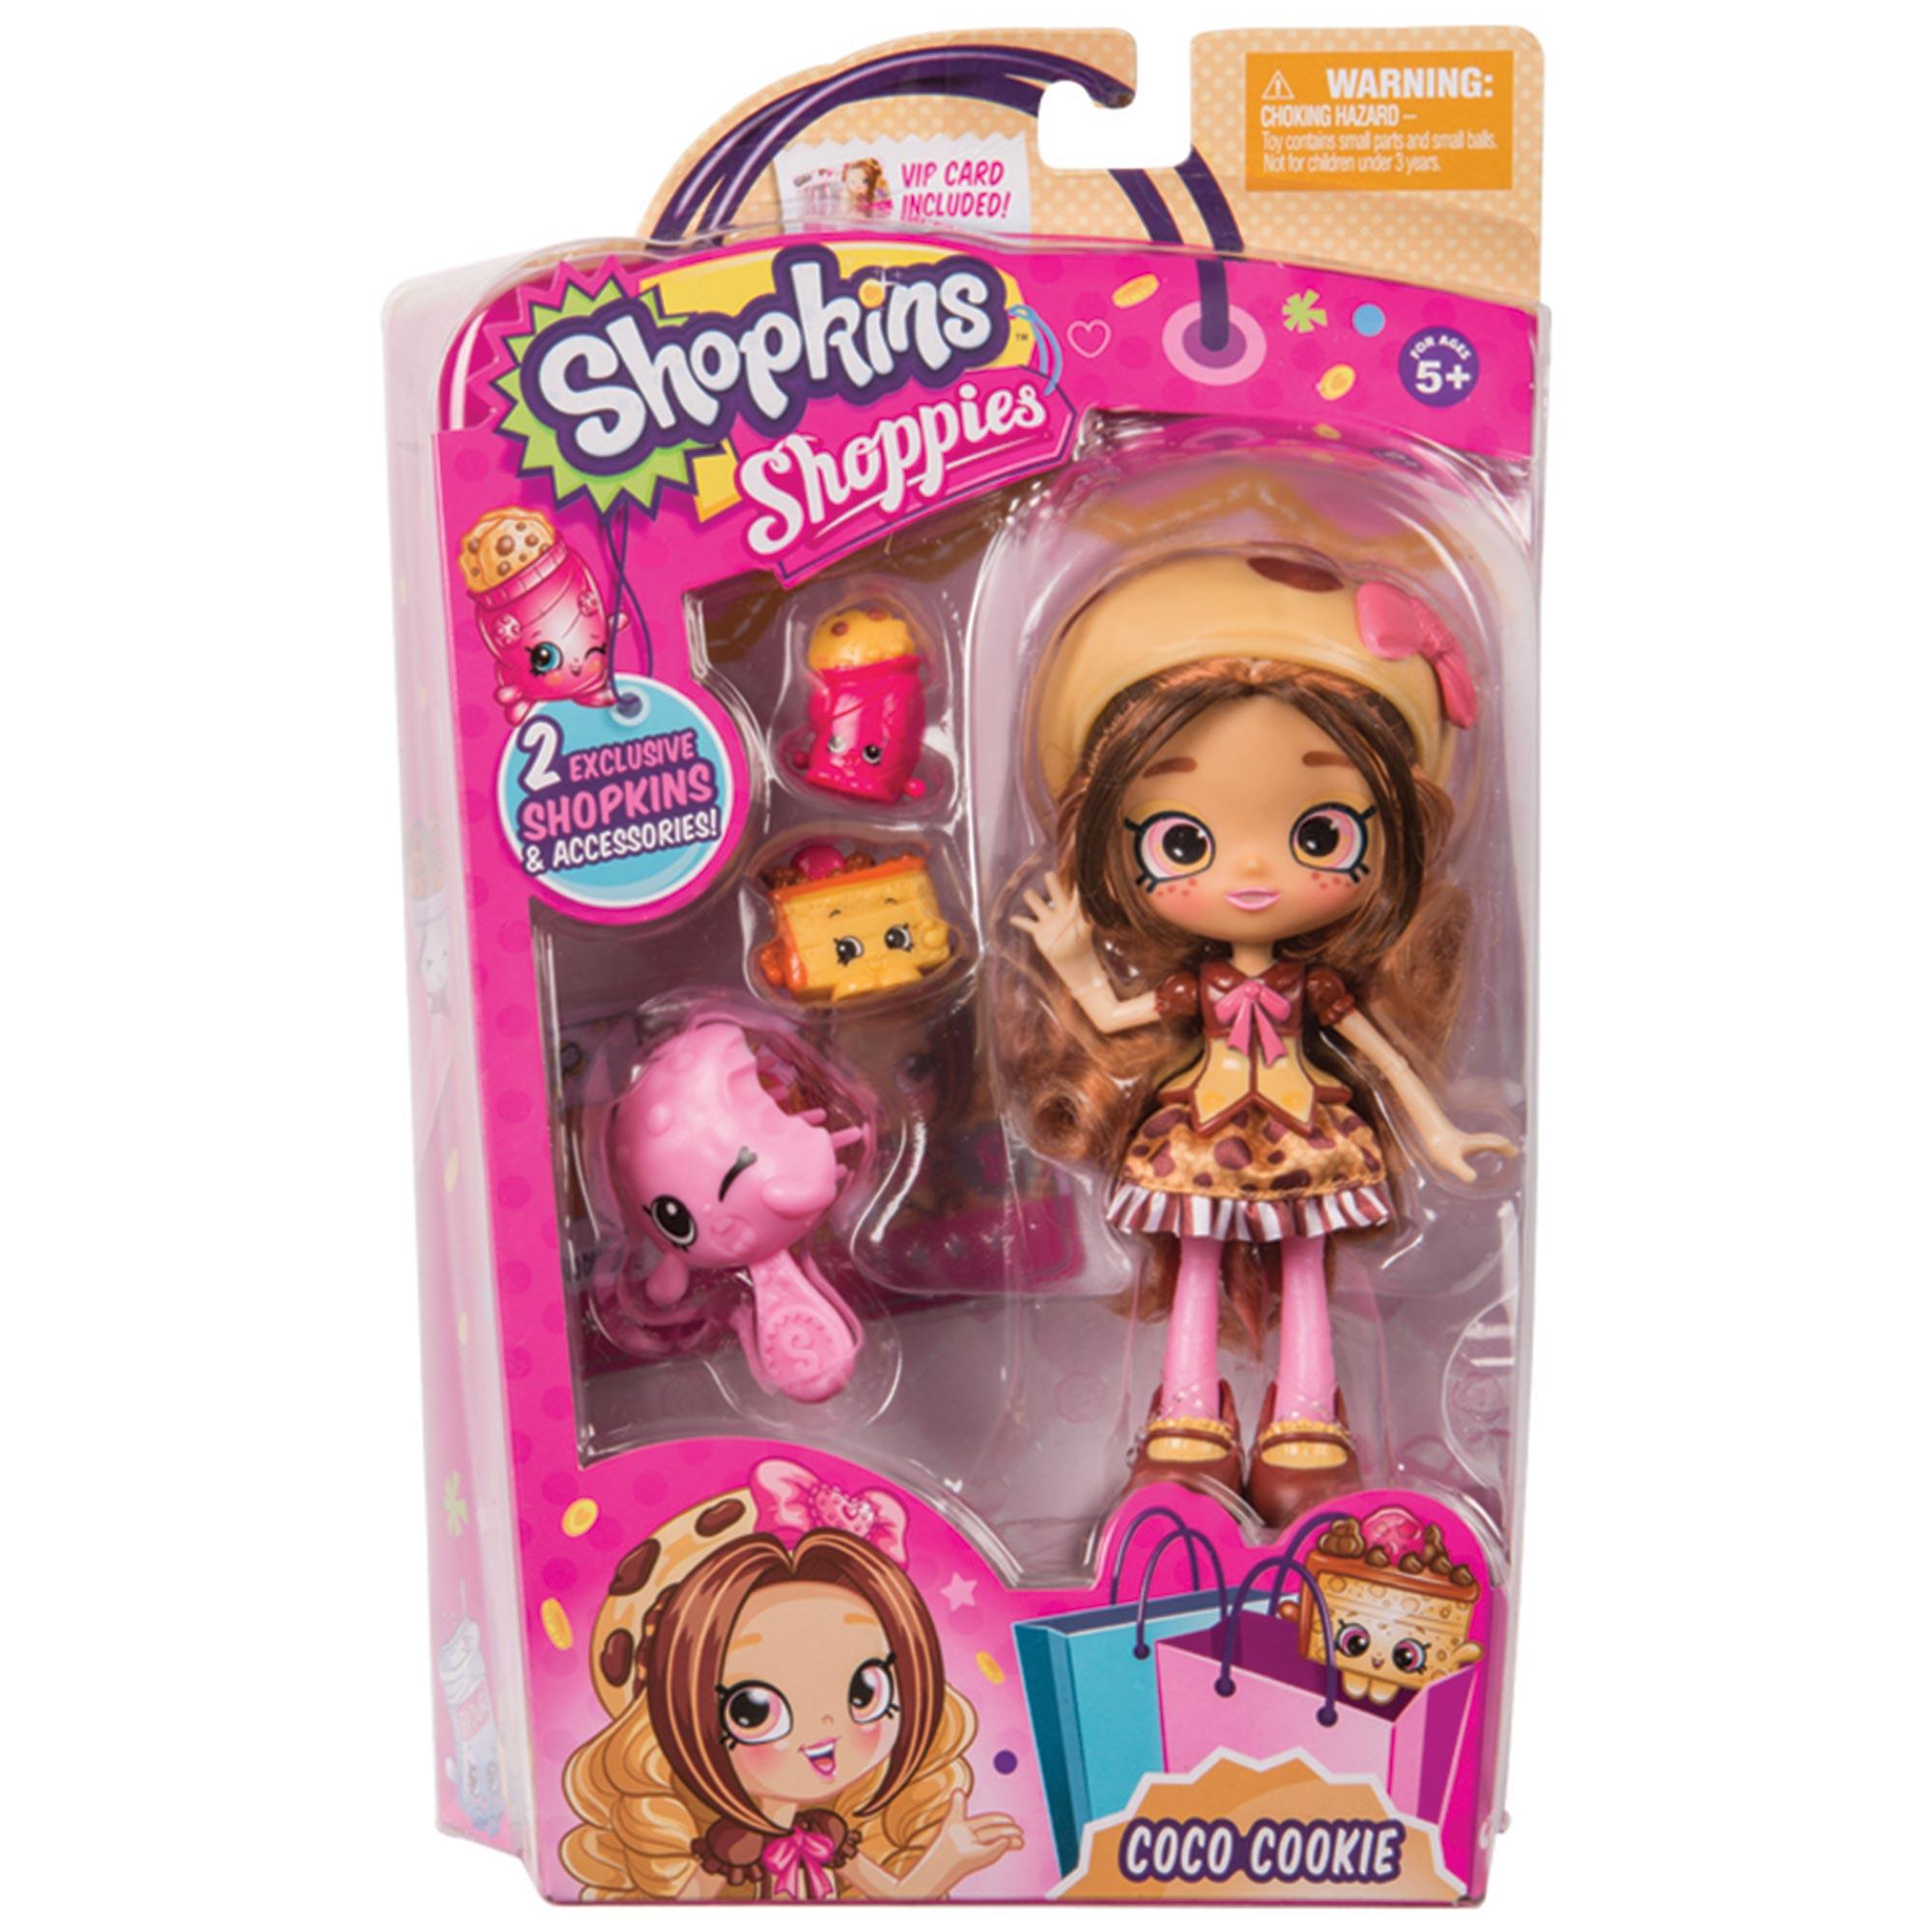 Shopkins Shoppies Dolls Assortment